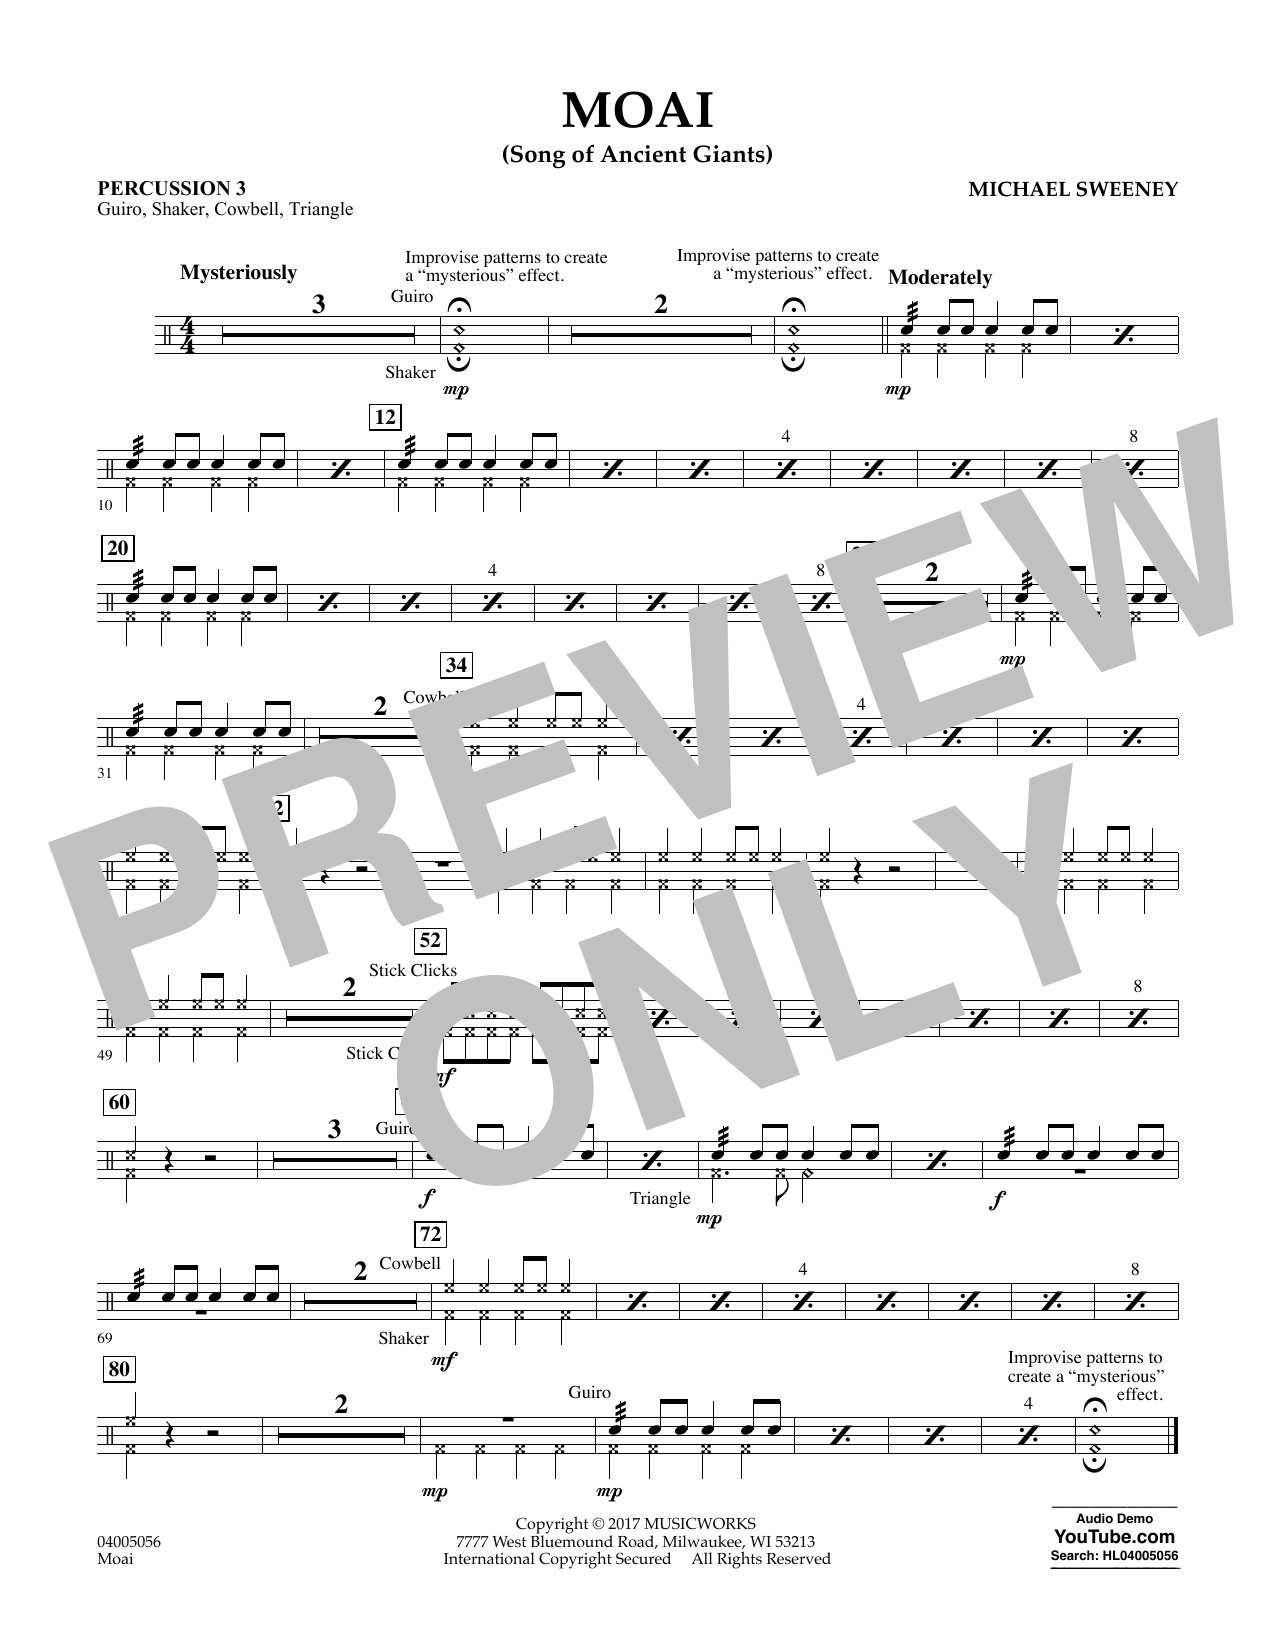 Michael Sweeney Moai (Songs of Ancient Giants) - Percussion 3 sheet music notes and chords. Download Printable PDF.